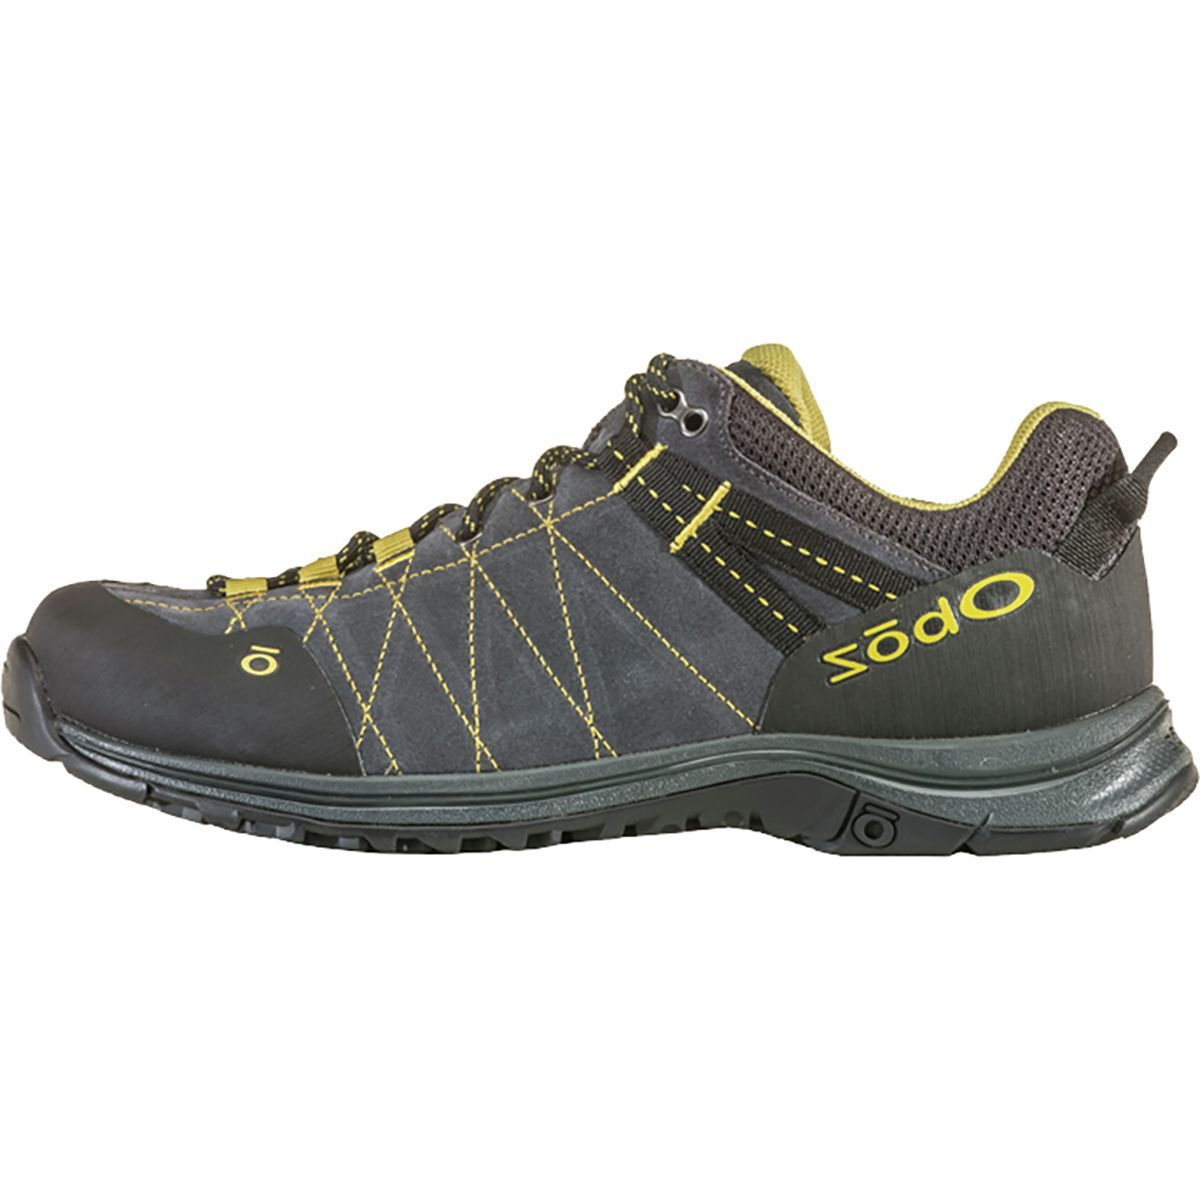 Oboz Hyalite Low Hiking Shoe - Men's